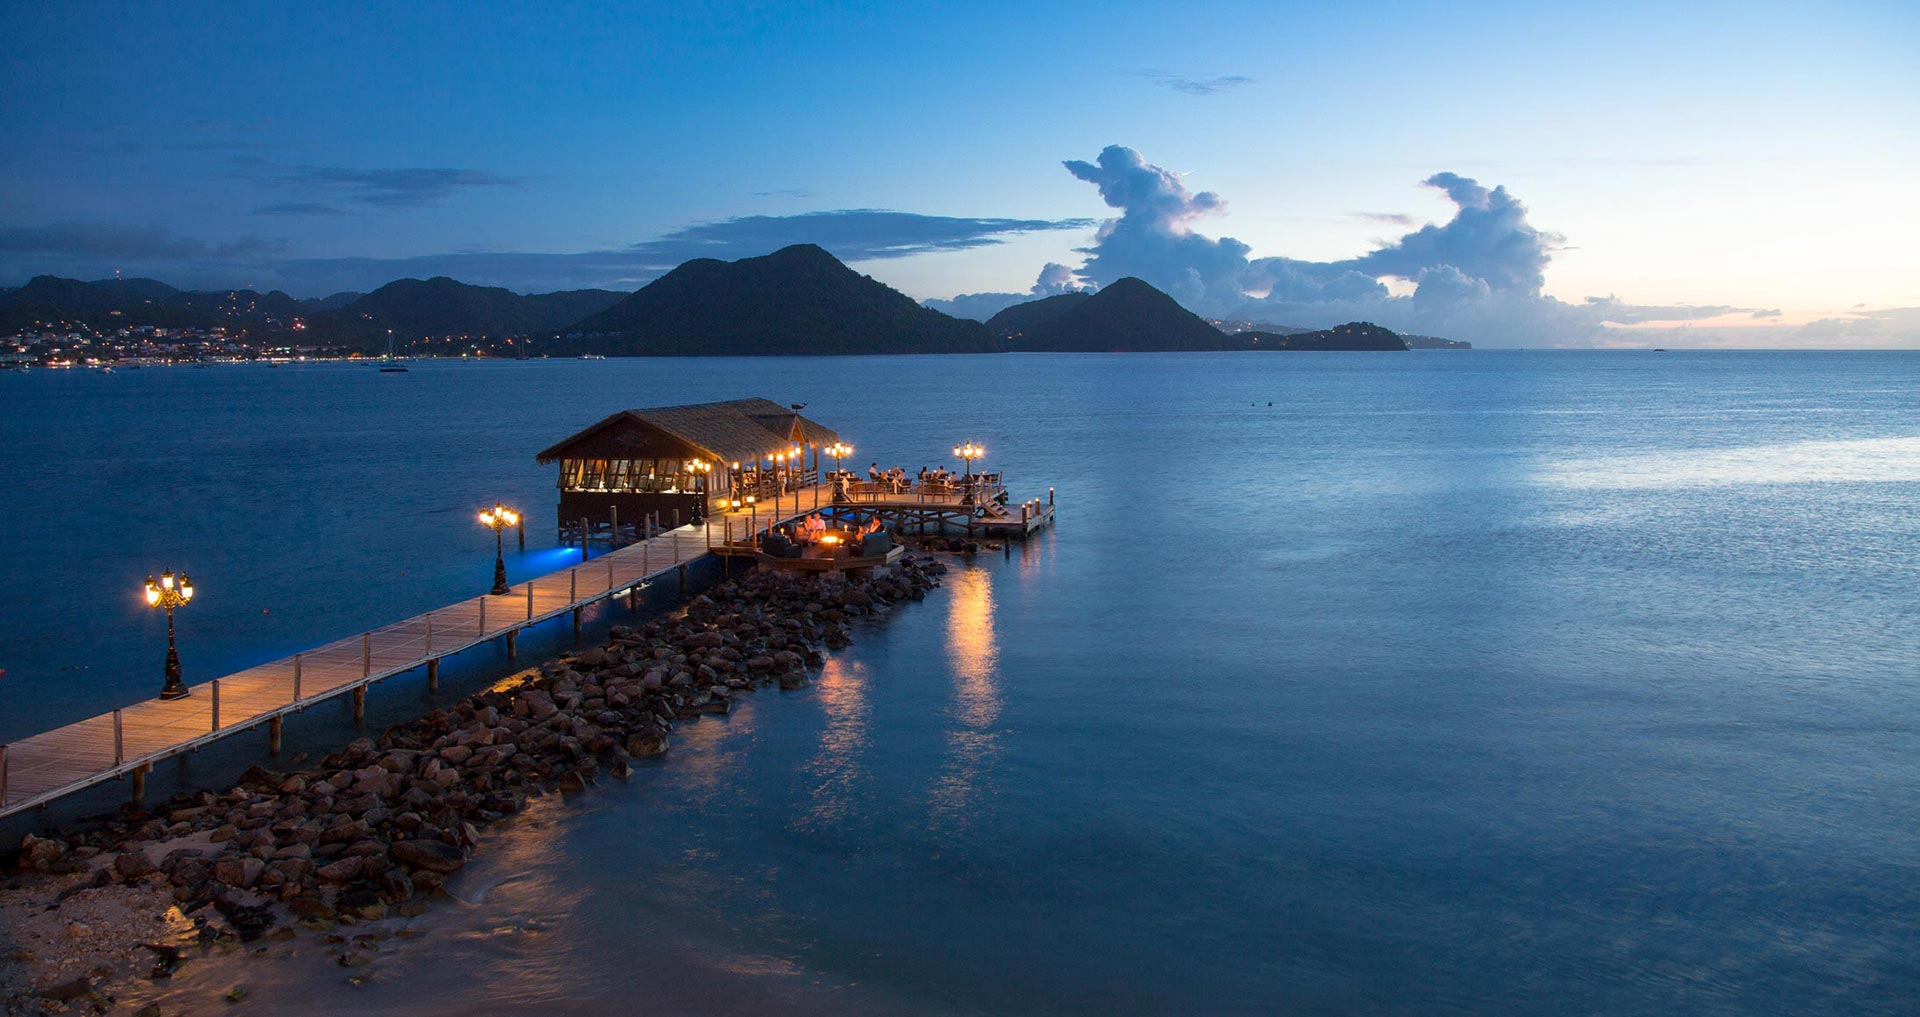 Sandals Grande St. Lucian at night